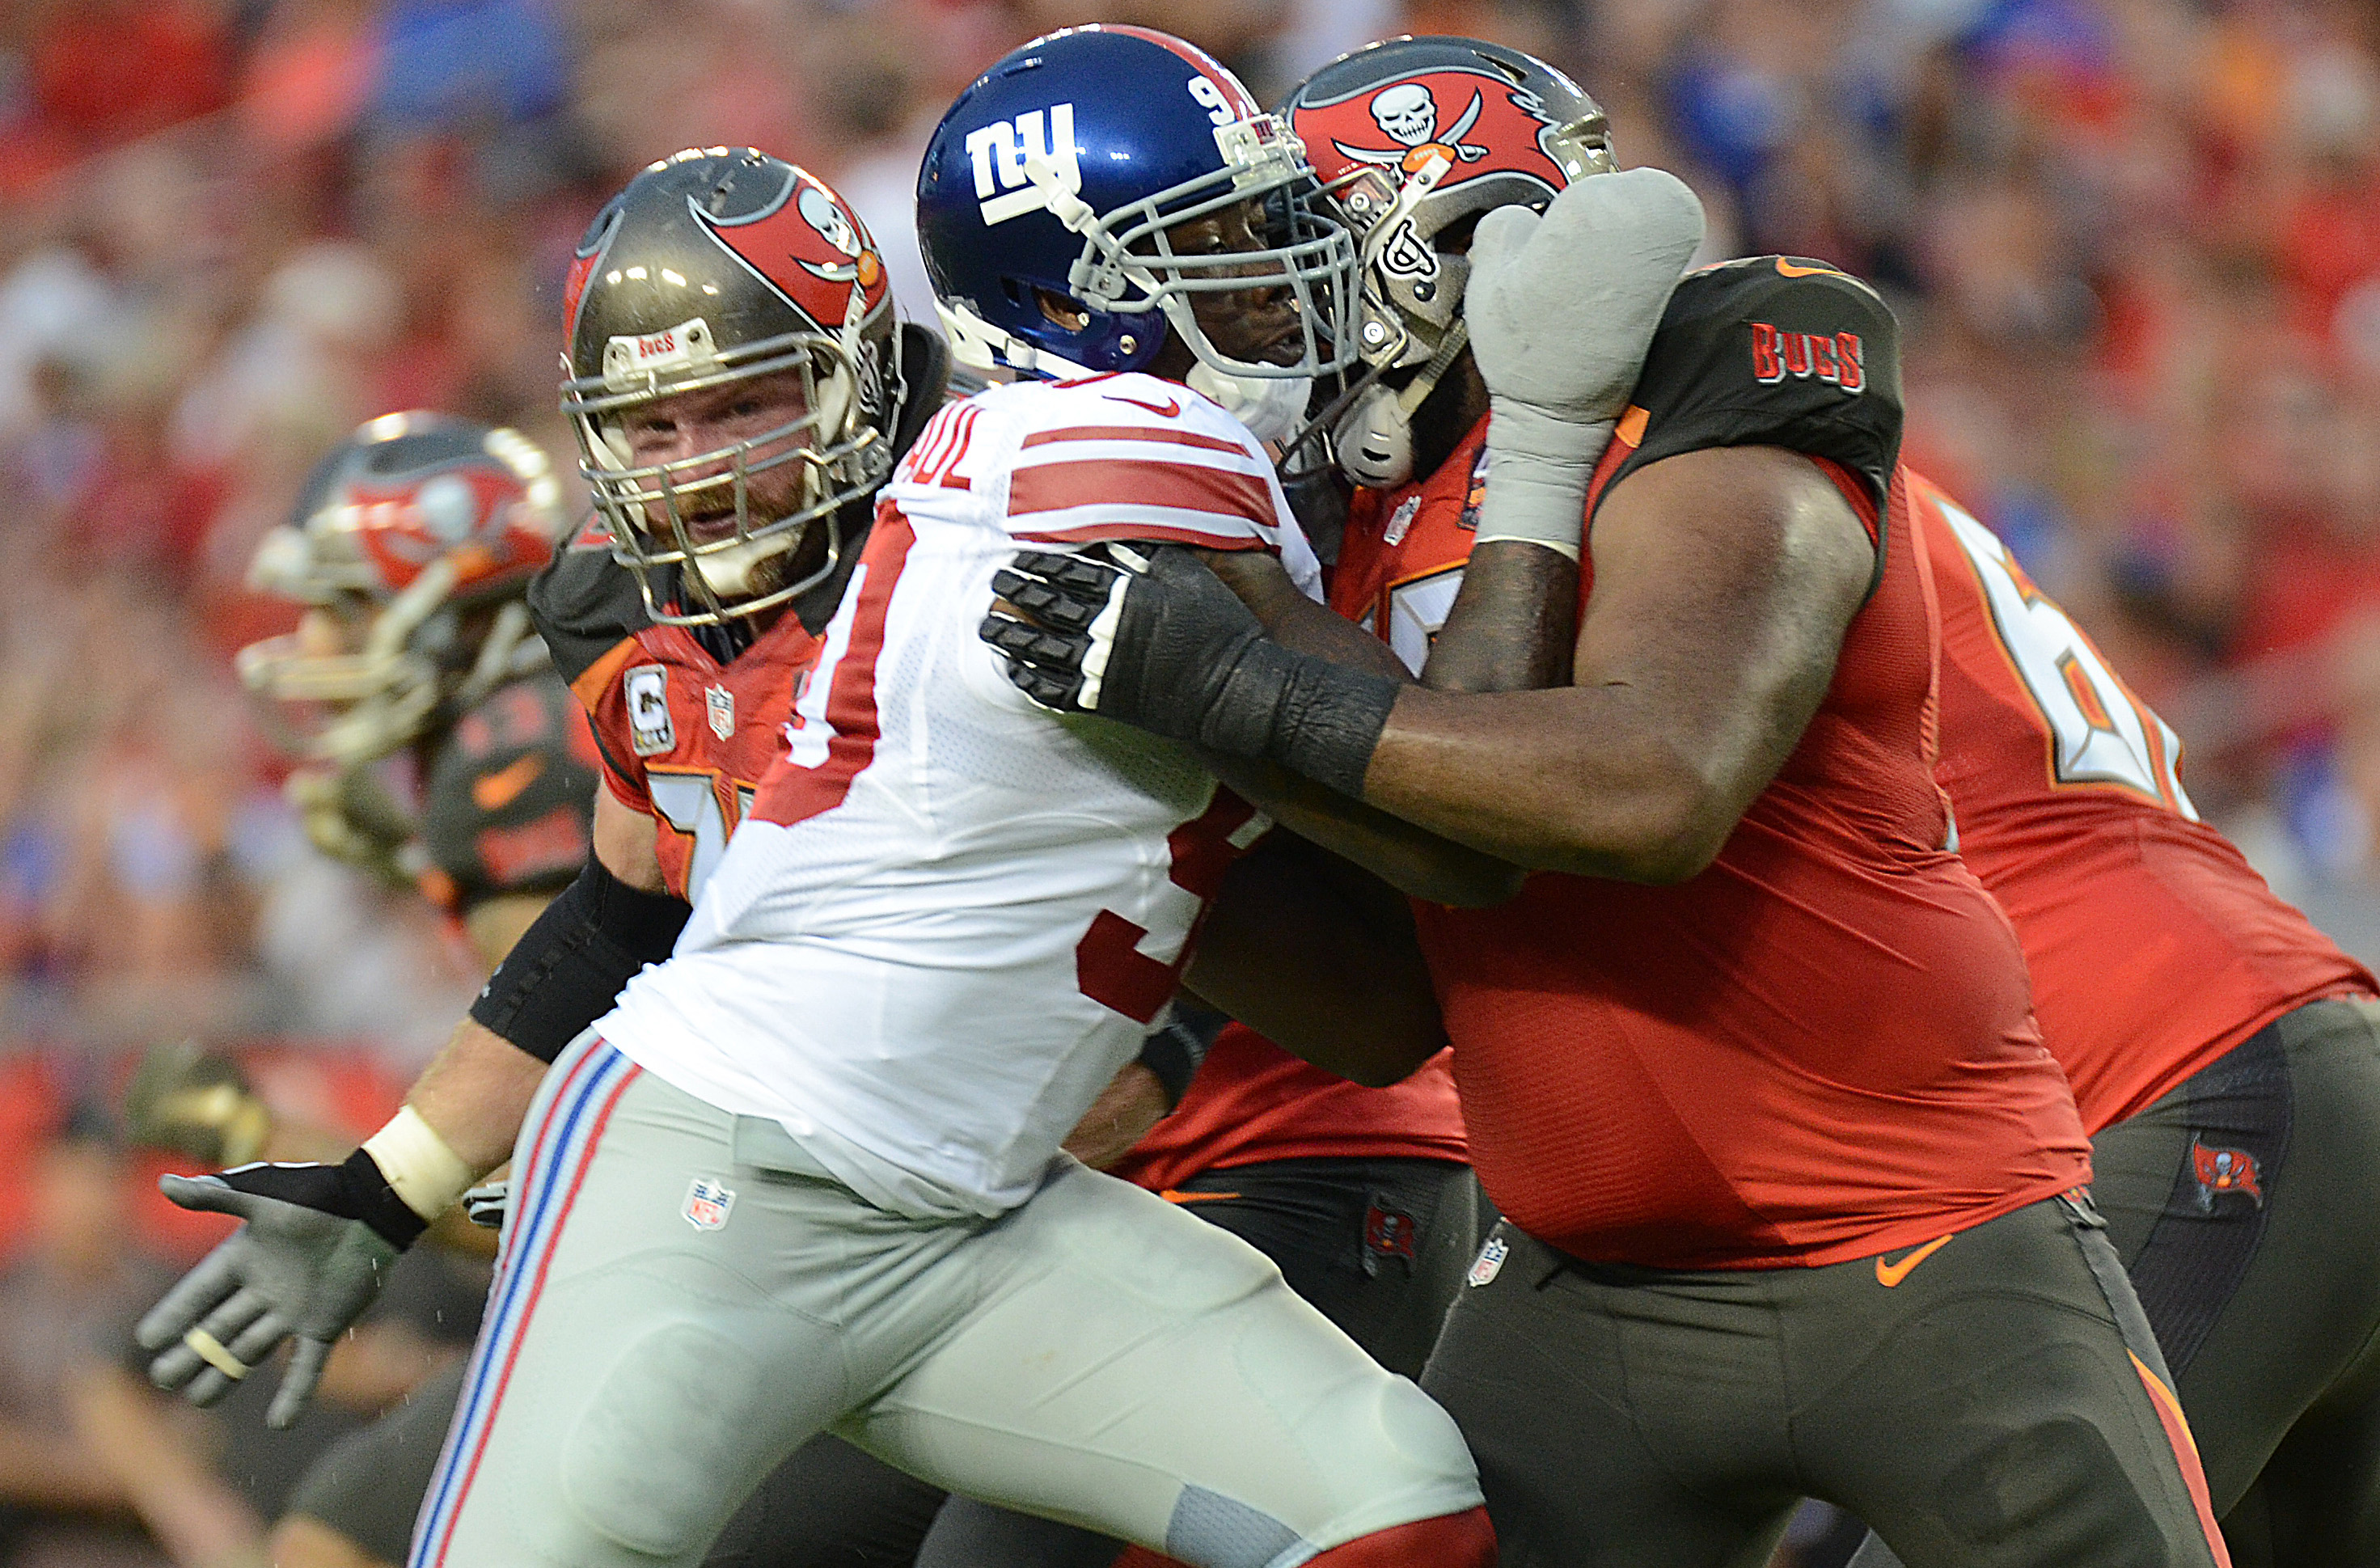 Nov 8, 2015; Tampa, FL, USA; New York Giants defensive lineman Jason Pierre-Paul (90) rushes the passer in the first half against theTampa Bay Buccaneers at Raymond James Stadium. The New York Giants defeated the Tampa Bay Buccaneers 32-18. Mandatory Credit: Jonathan Dyer-USA TODAY Sports